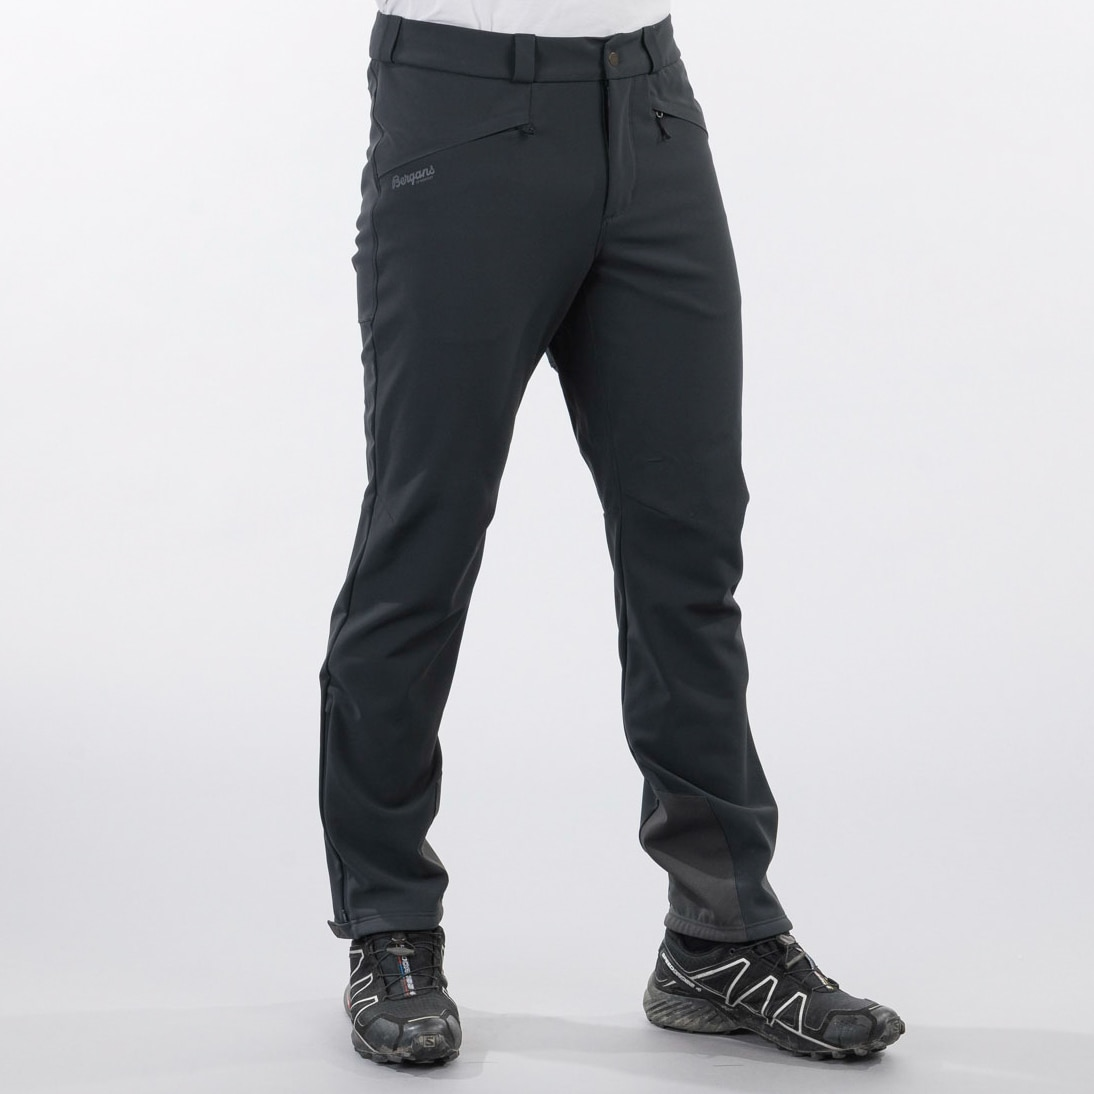 Rabot 365 Warm Flex Pants